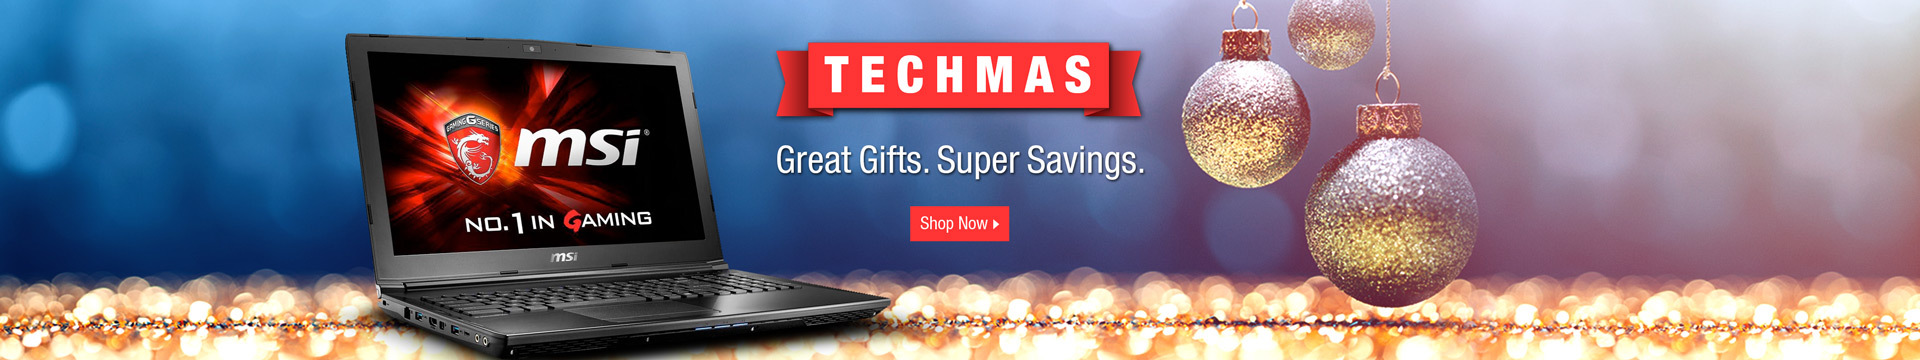 IT'S TECHMAS: GREAT GIFTS. SUPER SAVINGS